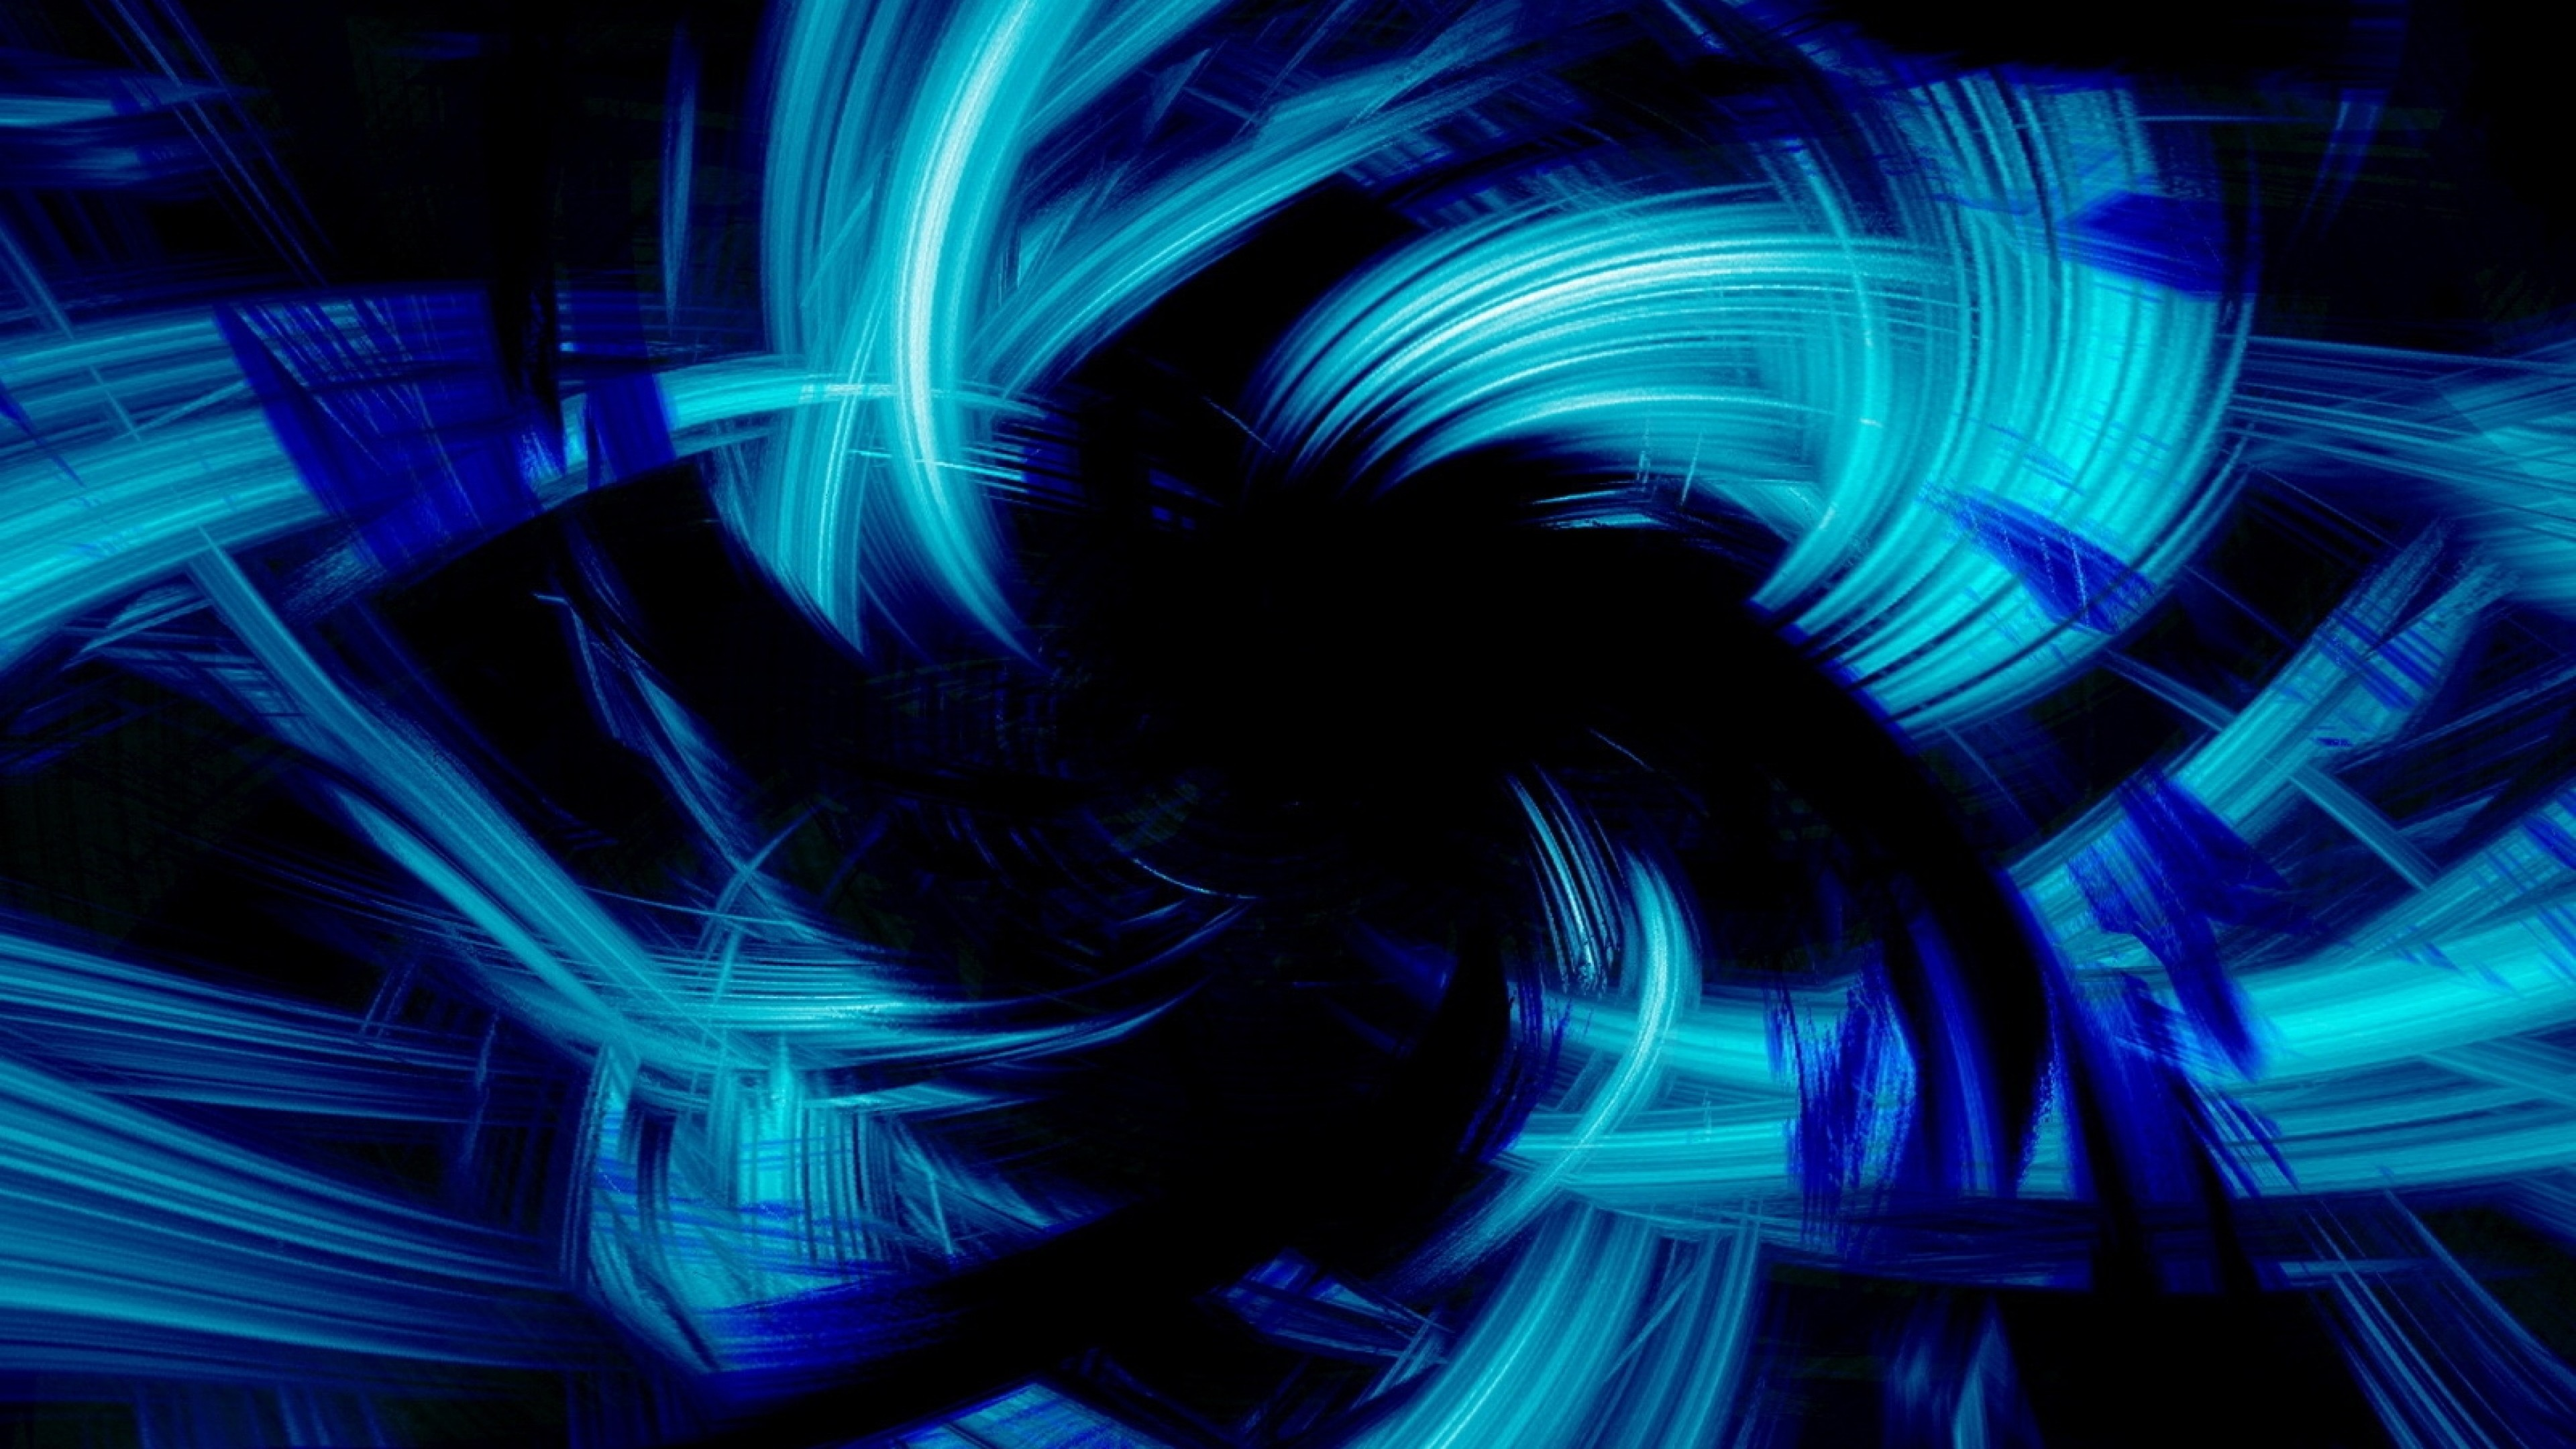 3840x2160 2560x1600 Neon Wallpapers High Resolution For Desktop ...